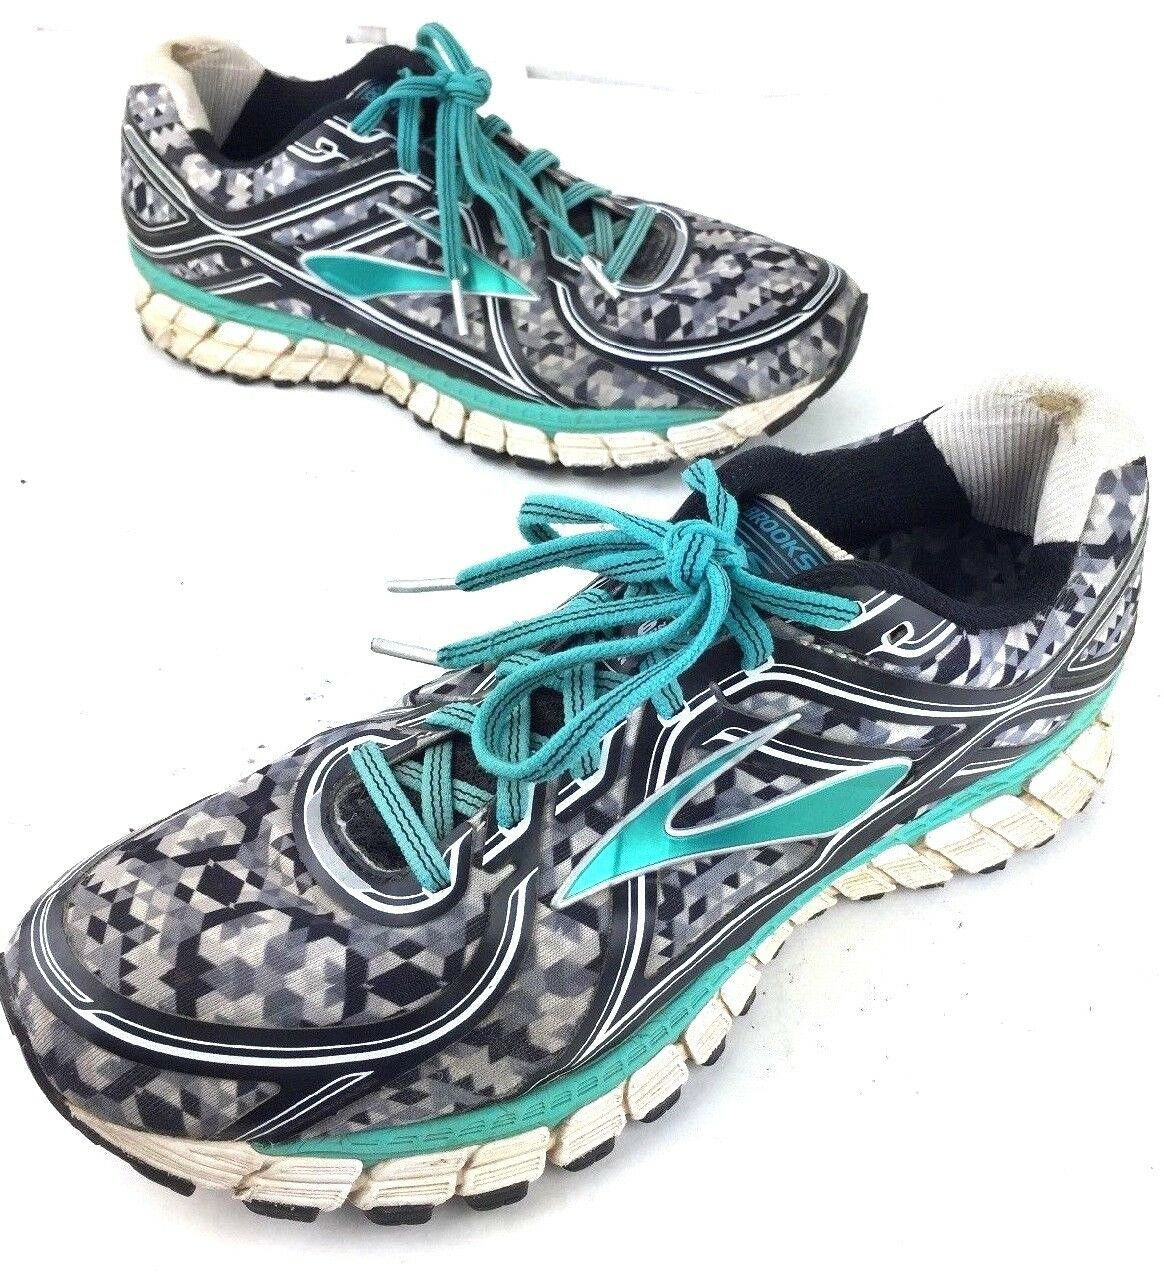 Brooks GTS 16 Adrenaline Military Como Running shoes sneakers Women's size 11